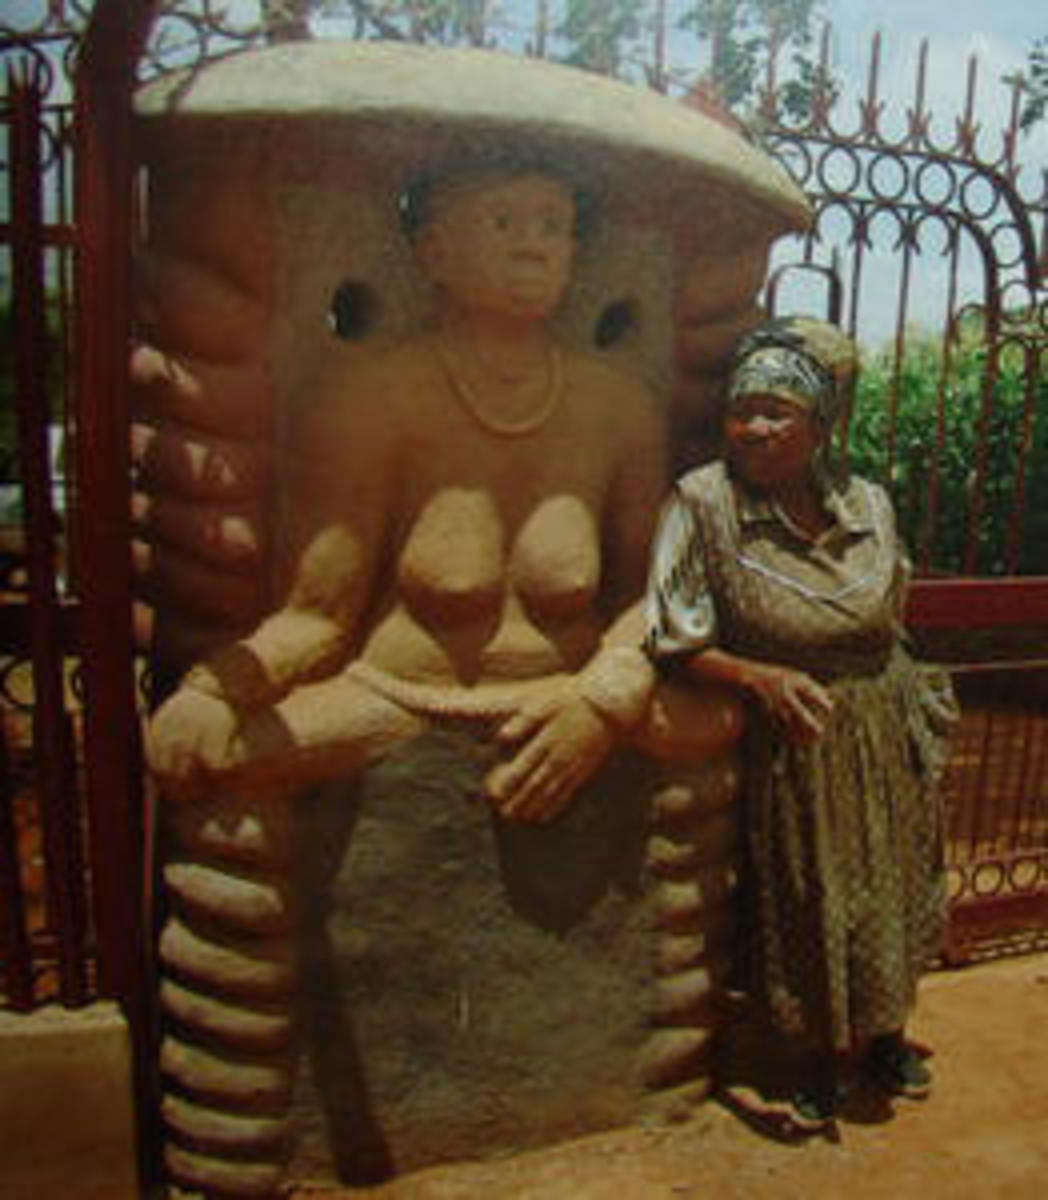 Renowned Venda Artist Noria Mabasa was born in Xigalo village in 1938